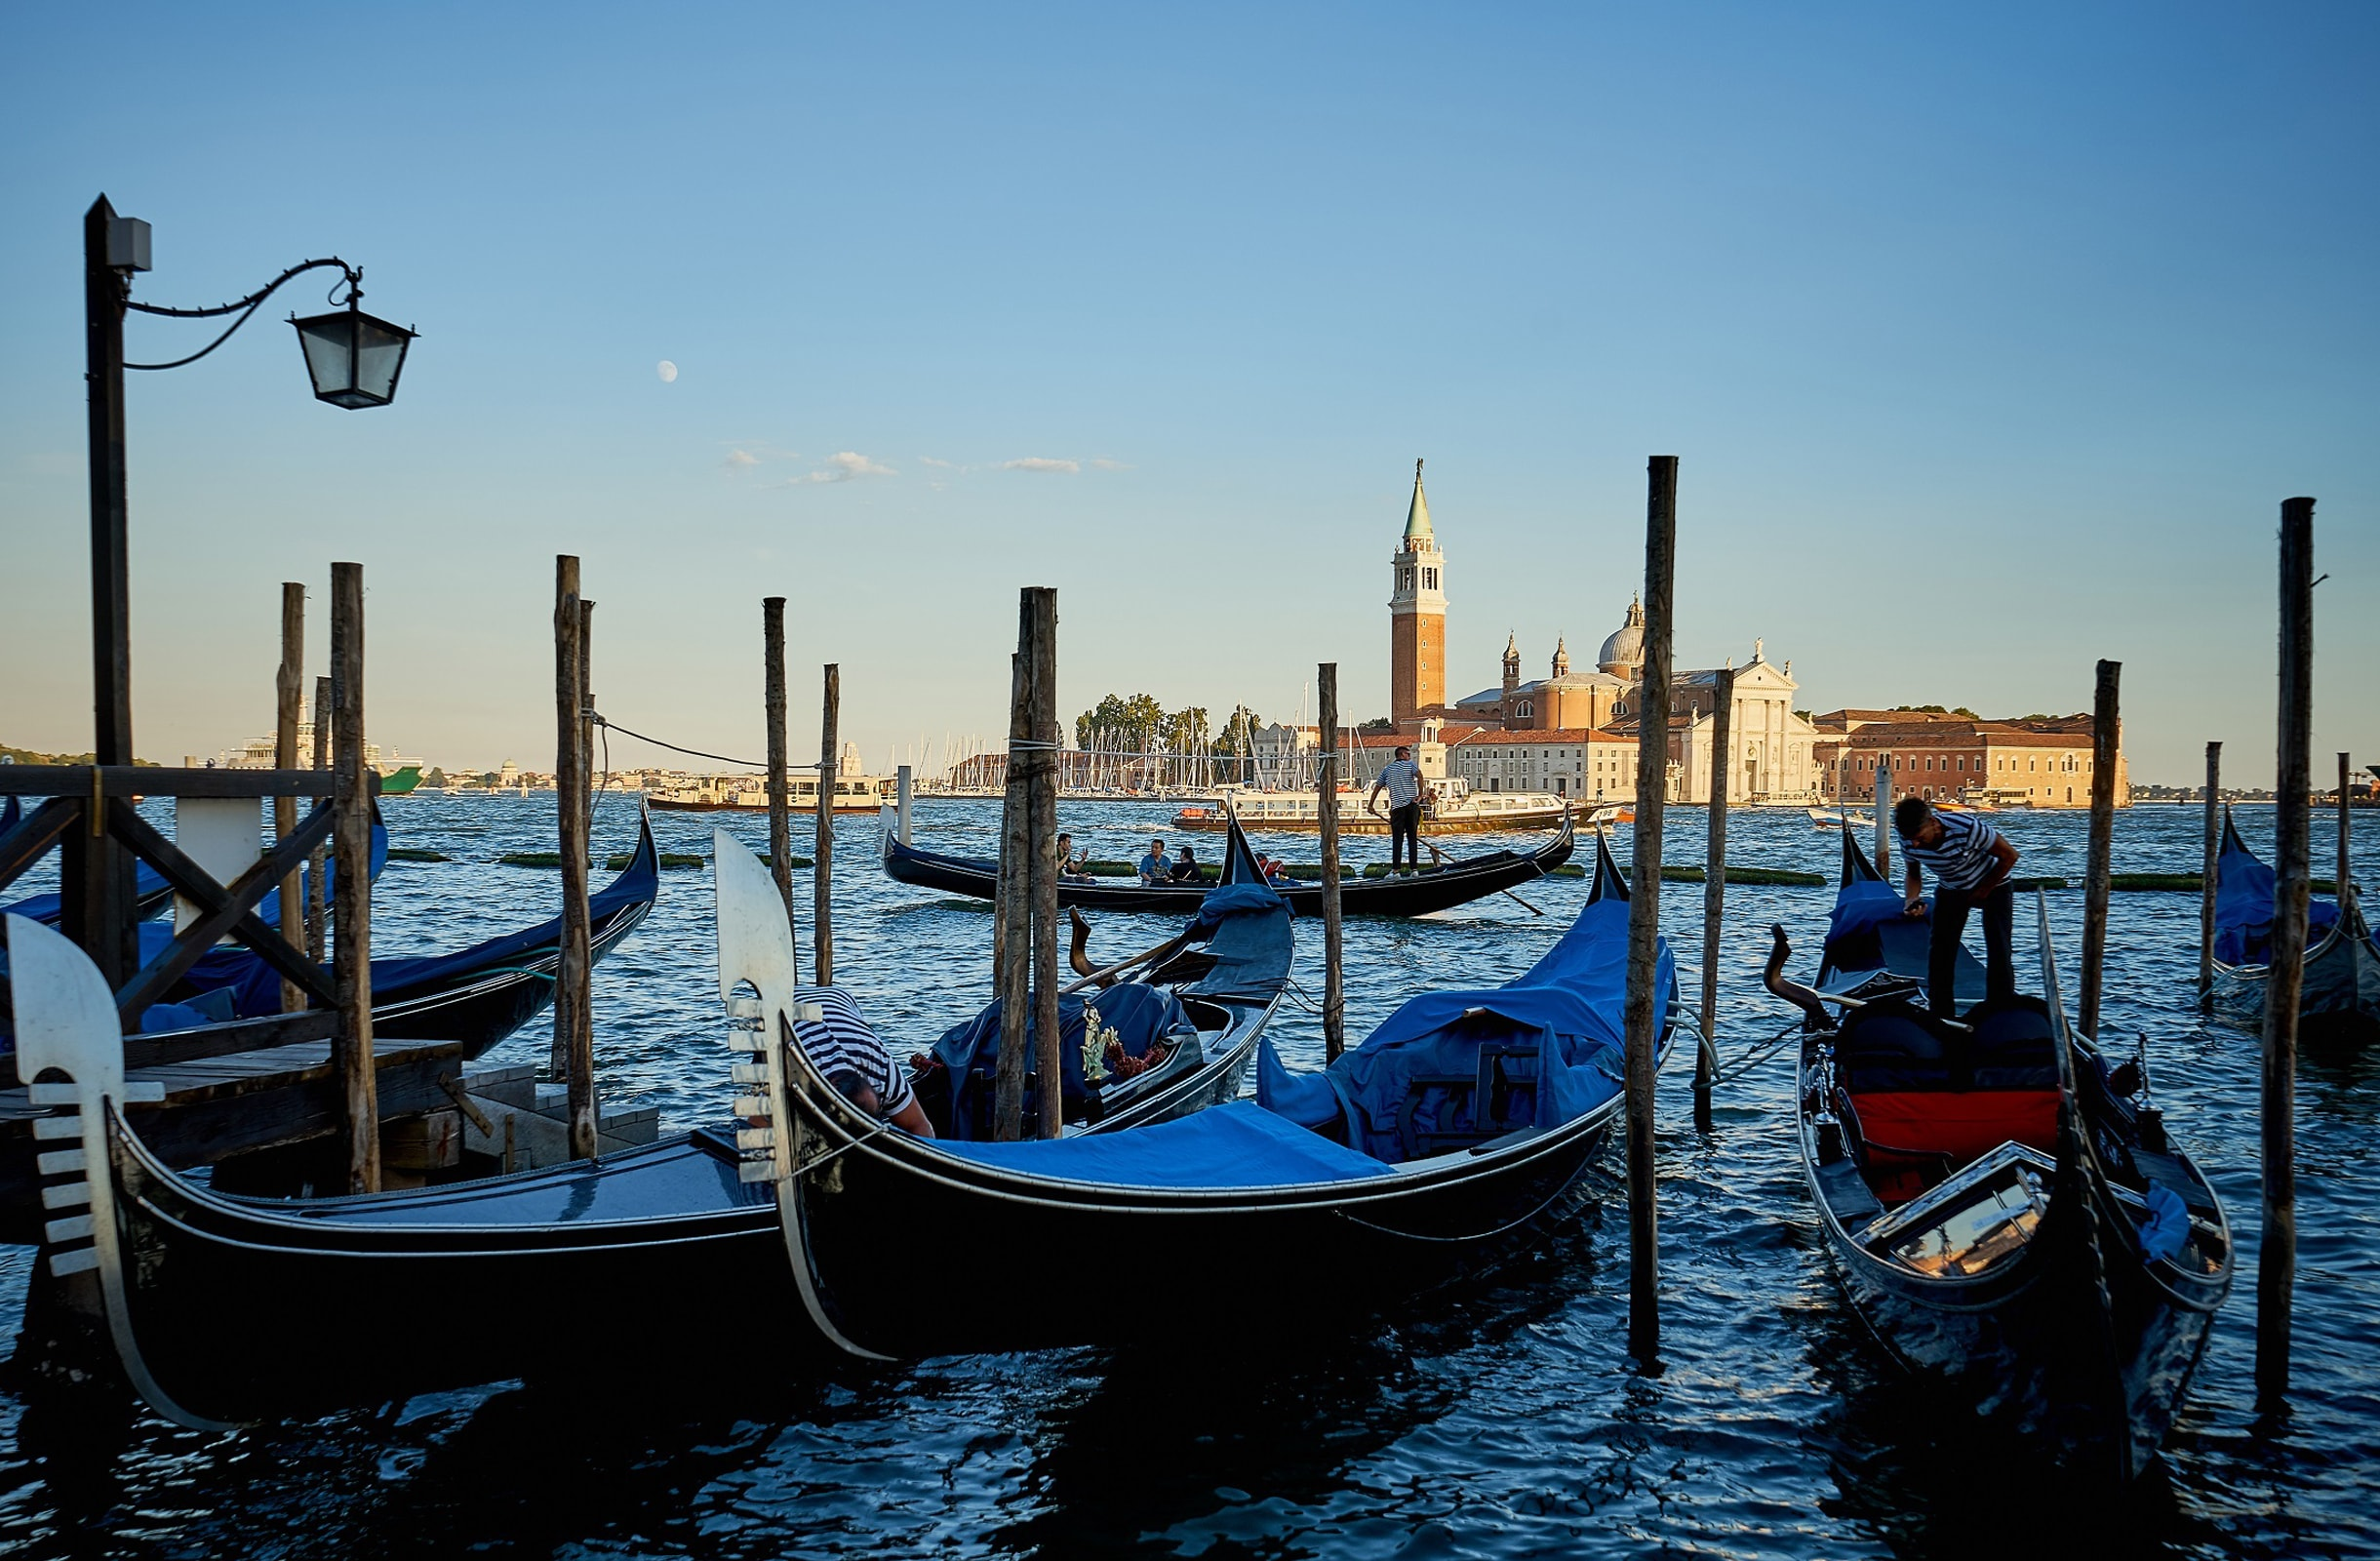 Discover Italy with up to 10% off base rates